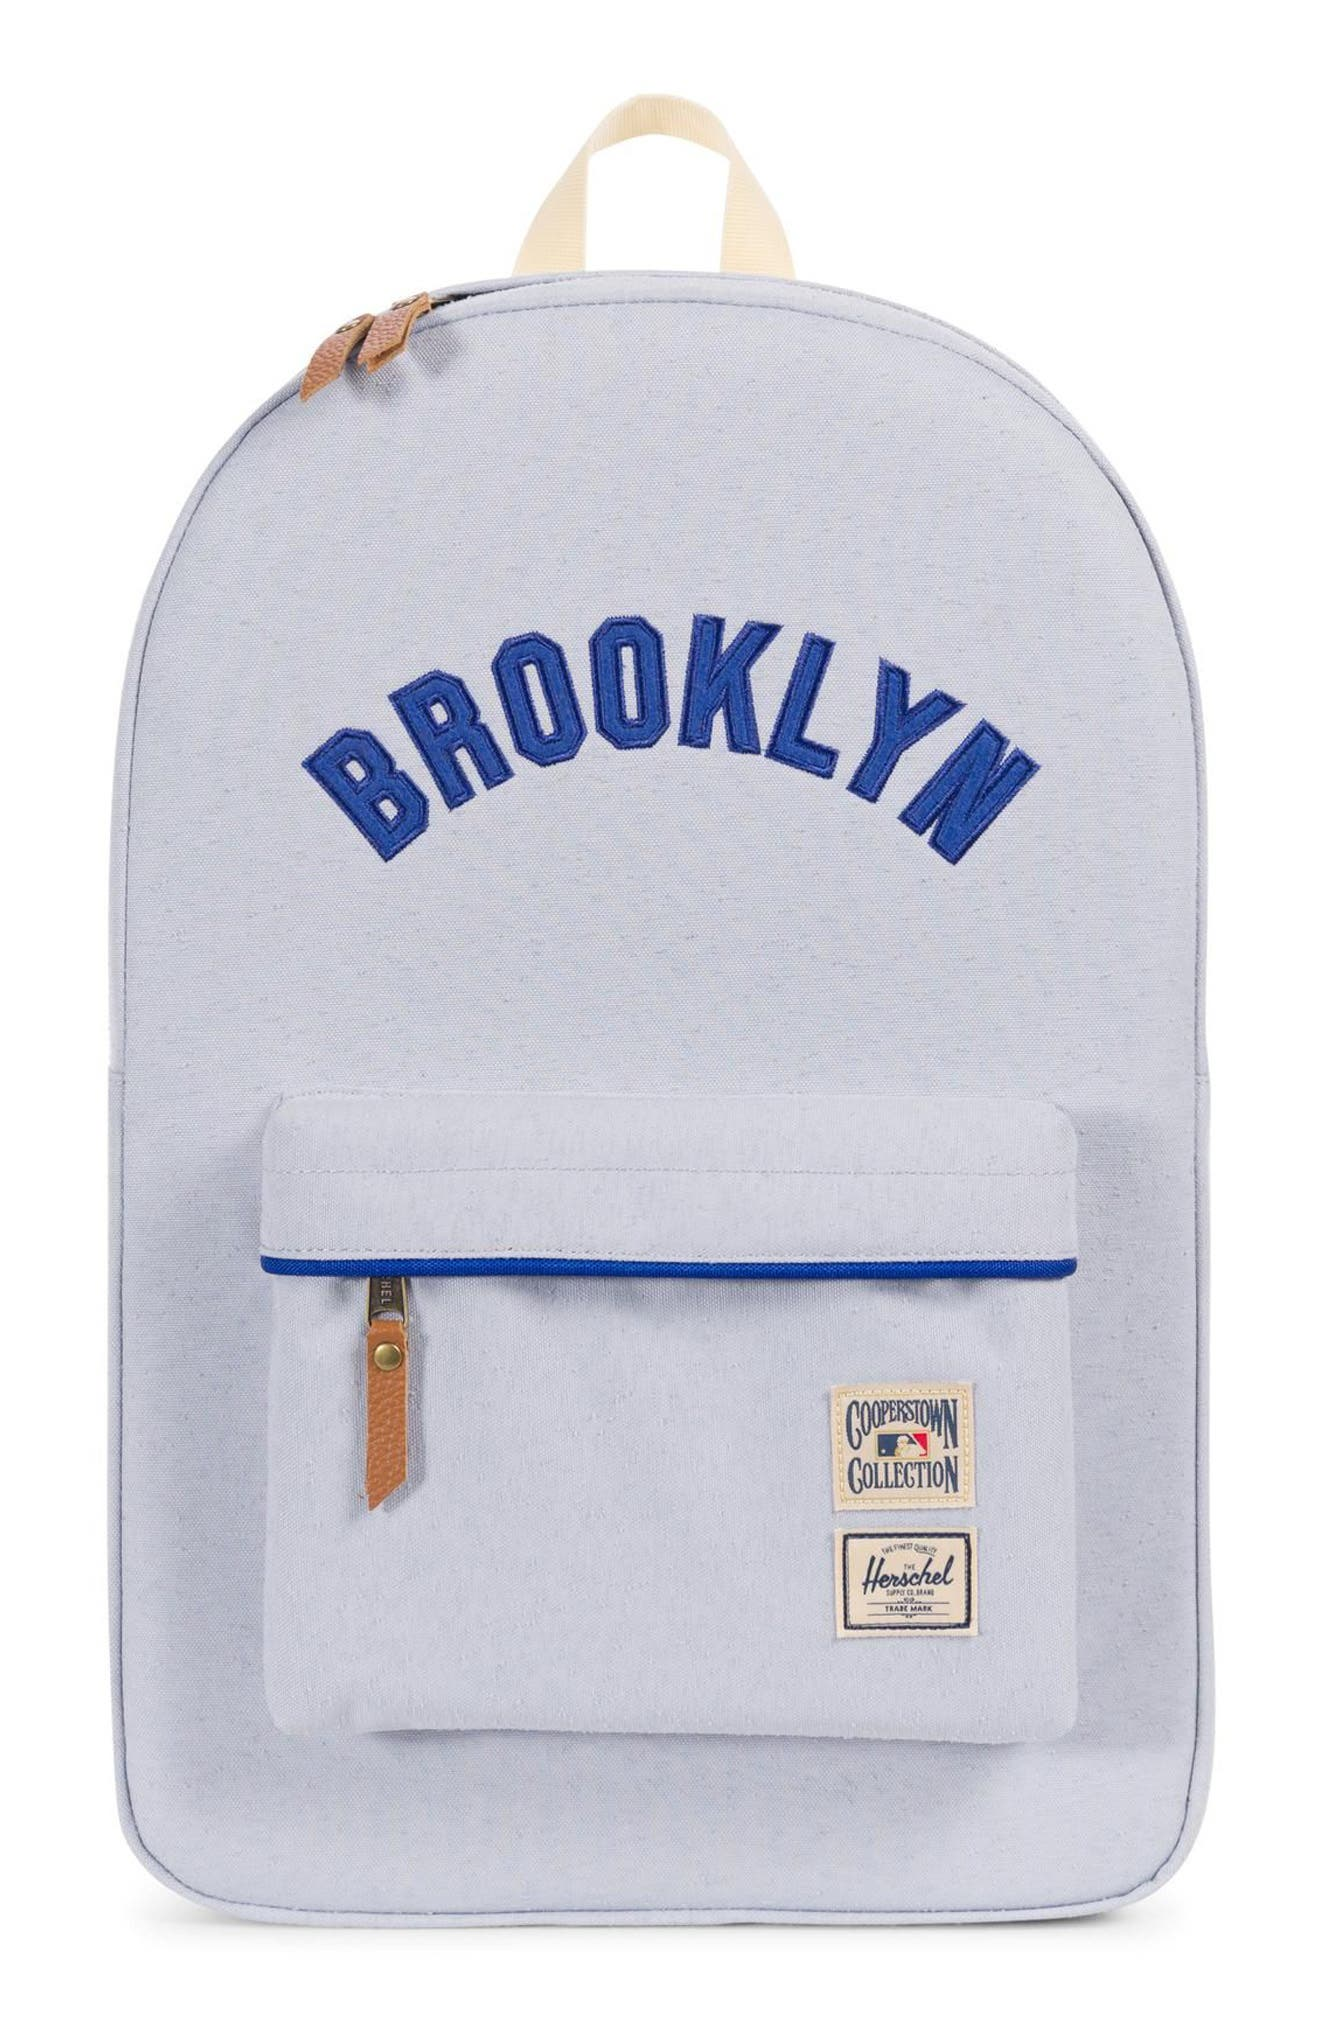 Heritage - MLB Cooperstown Collection Backpack,                             Main thumbnail 1, color,                             BROOKLYN DODGERS